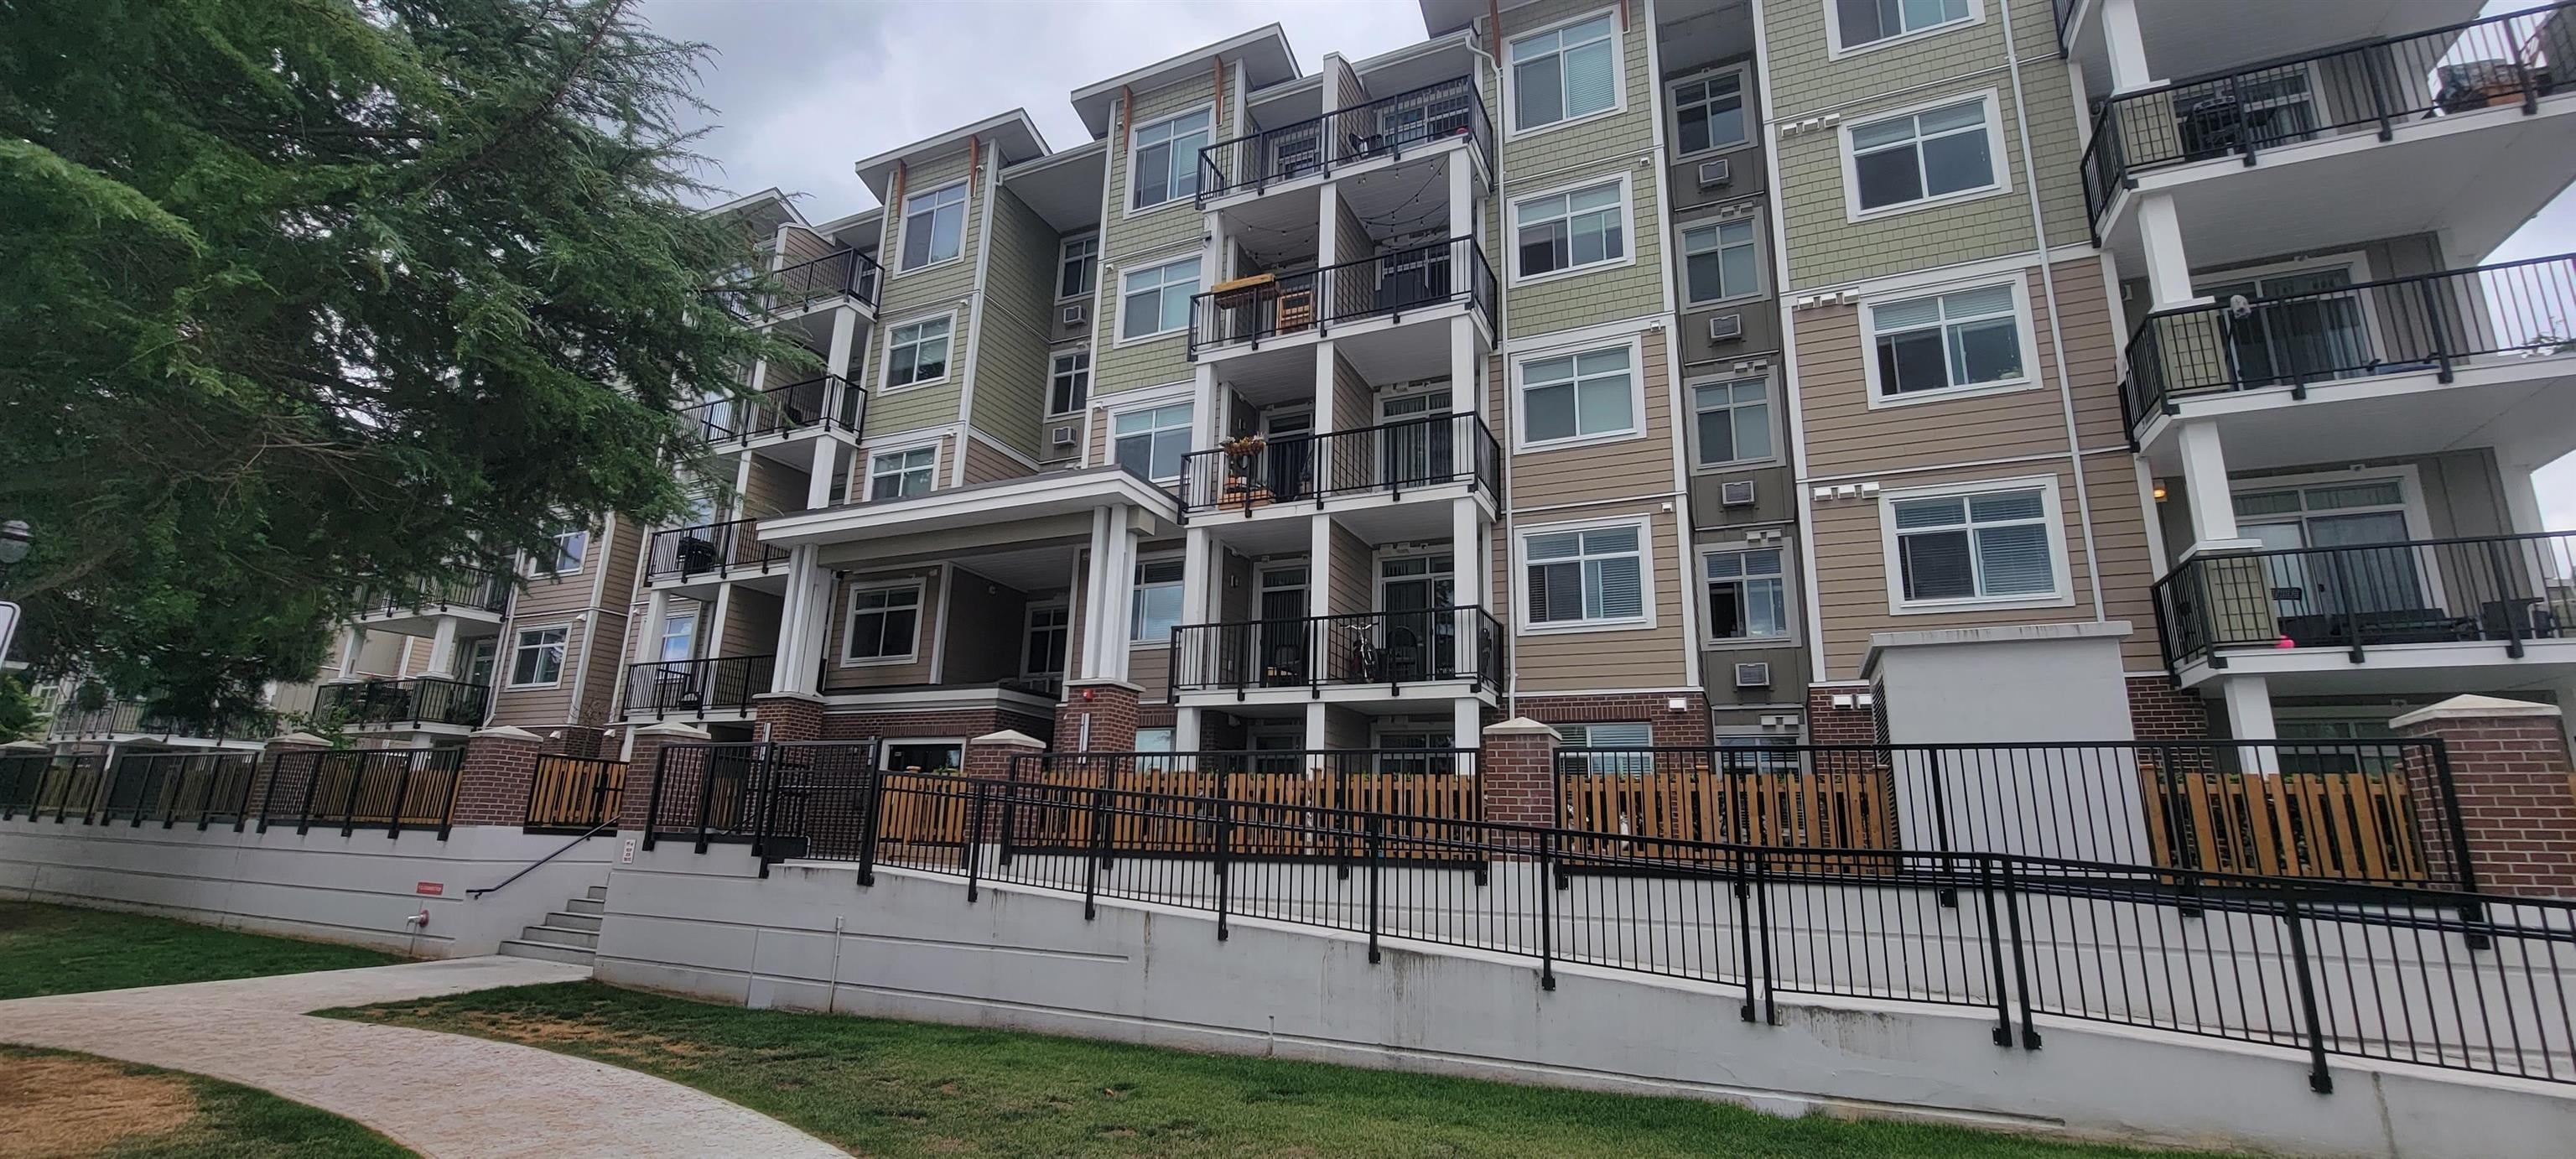 109 20686 EASTLEIGH CRESCENT STREET - Langley City Apartment/Condo for sale, 1 Bedroom (R2616233) - #1